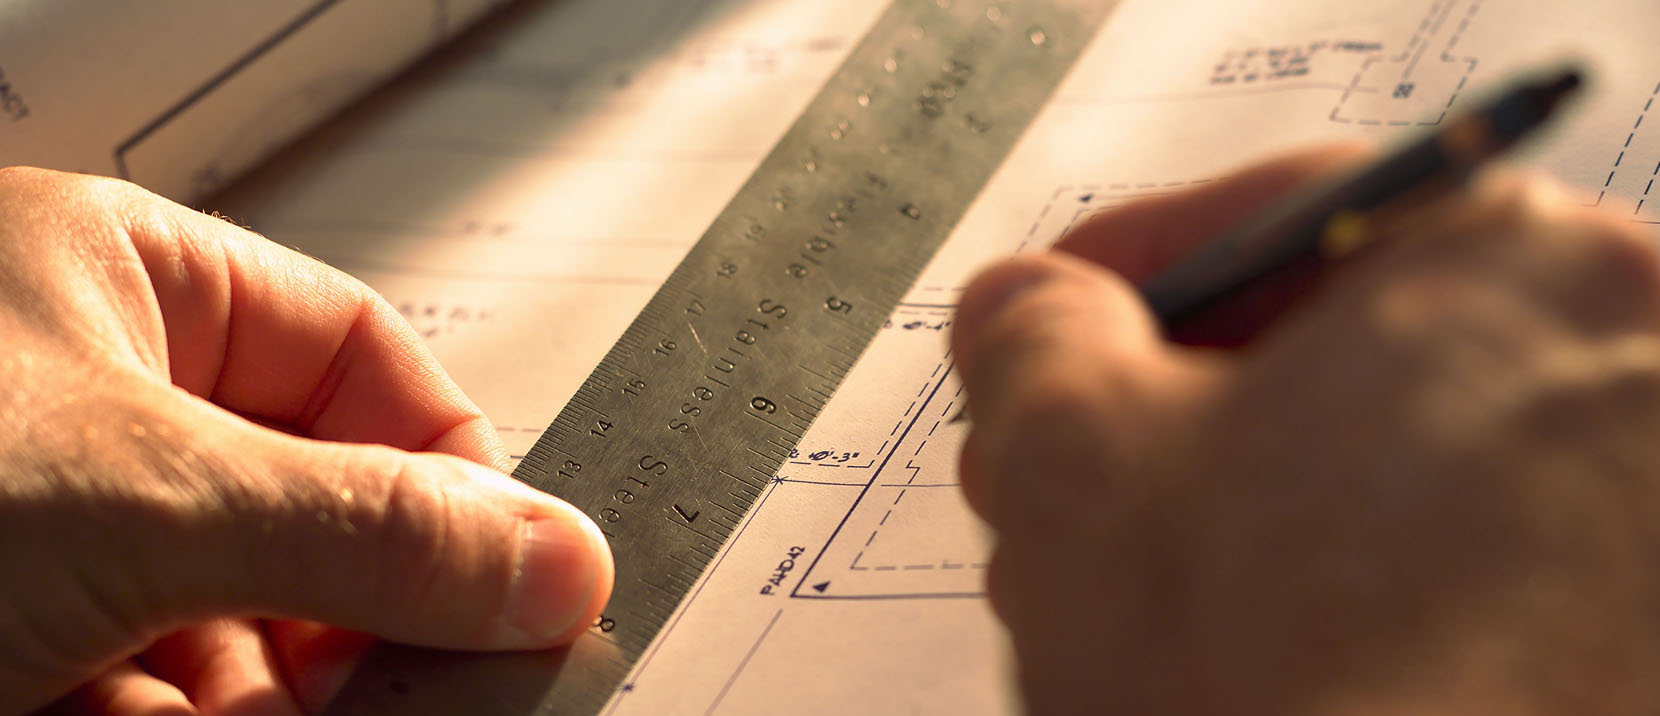 Blue Print Paper Document and Ruler, Hand Holds Pen